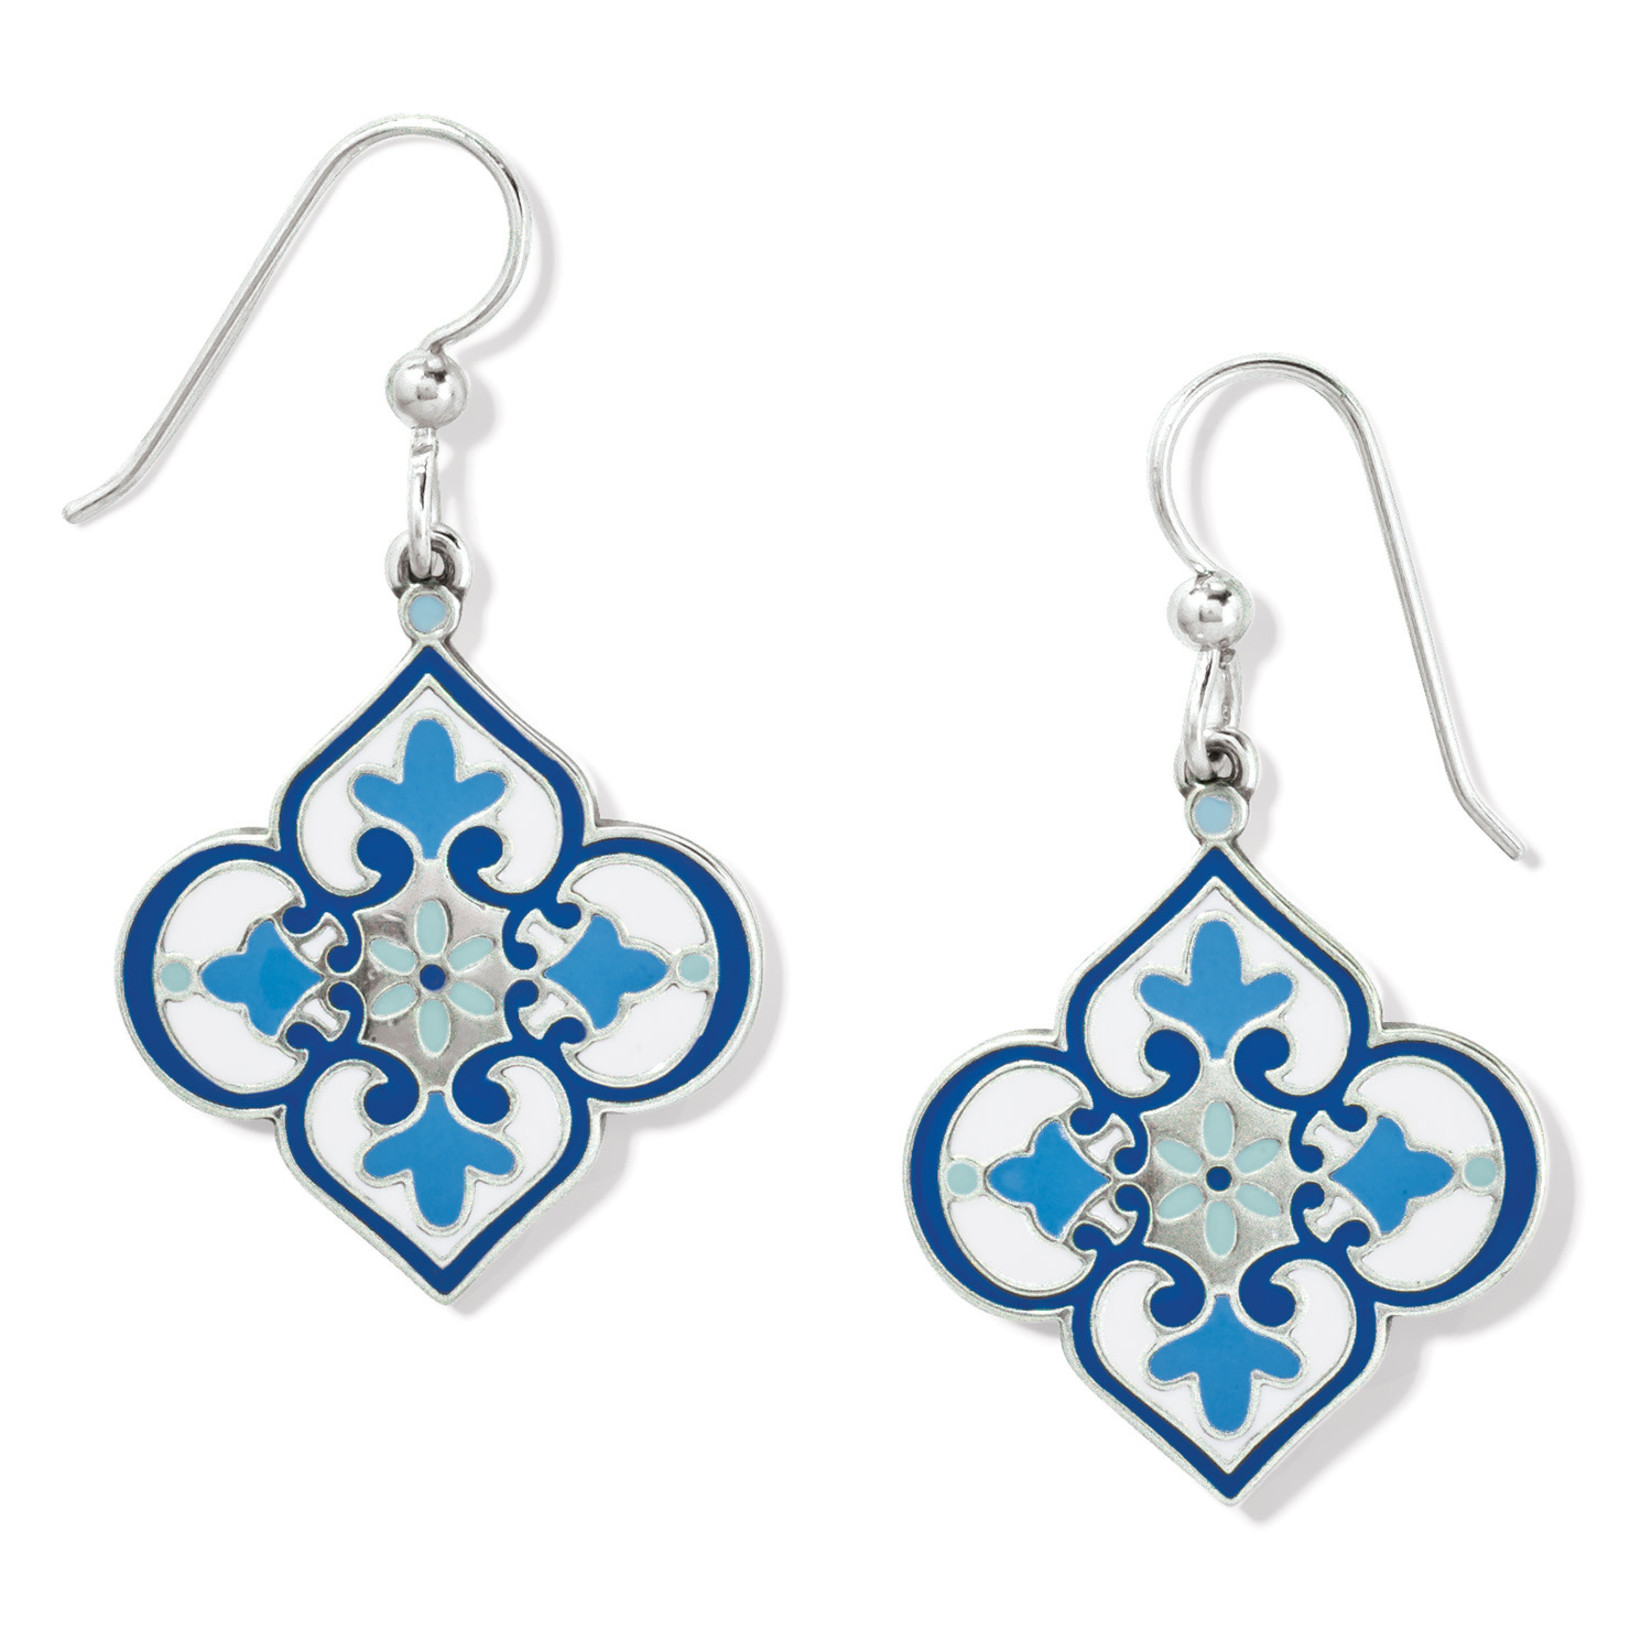 Brighton Florabella French Wire Earrings - Blues